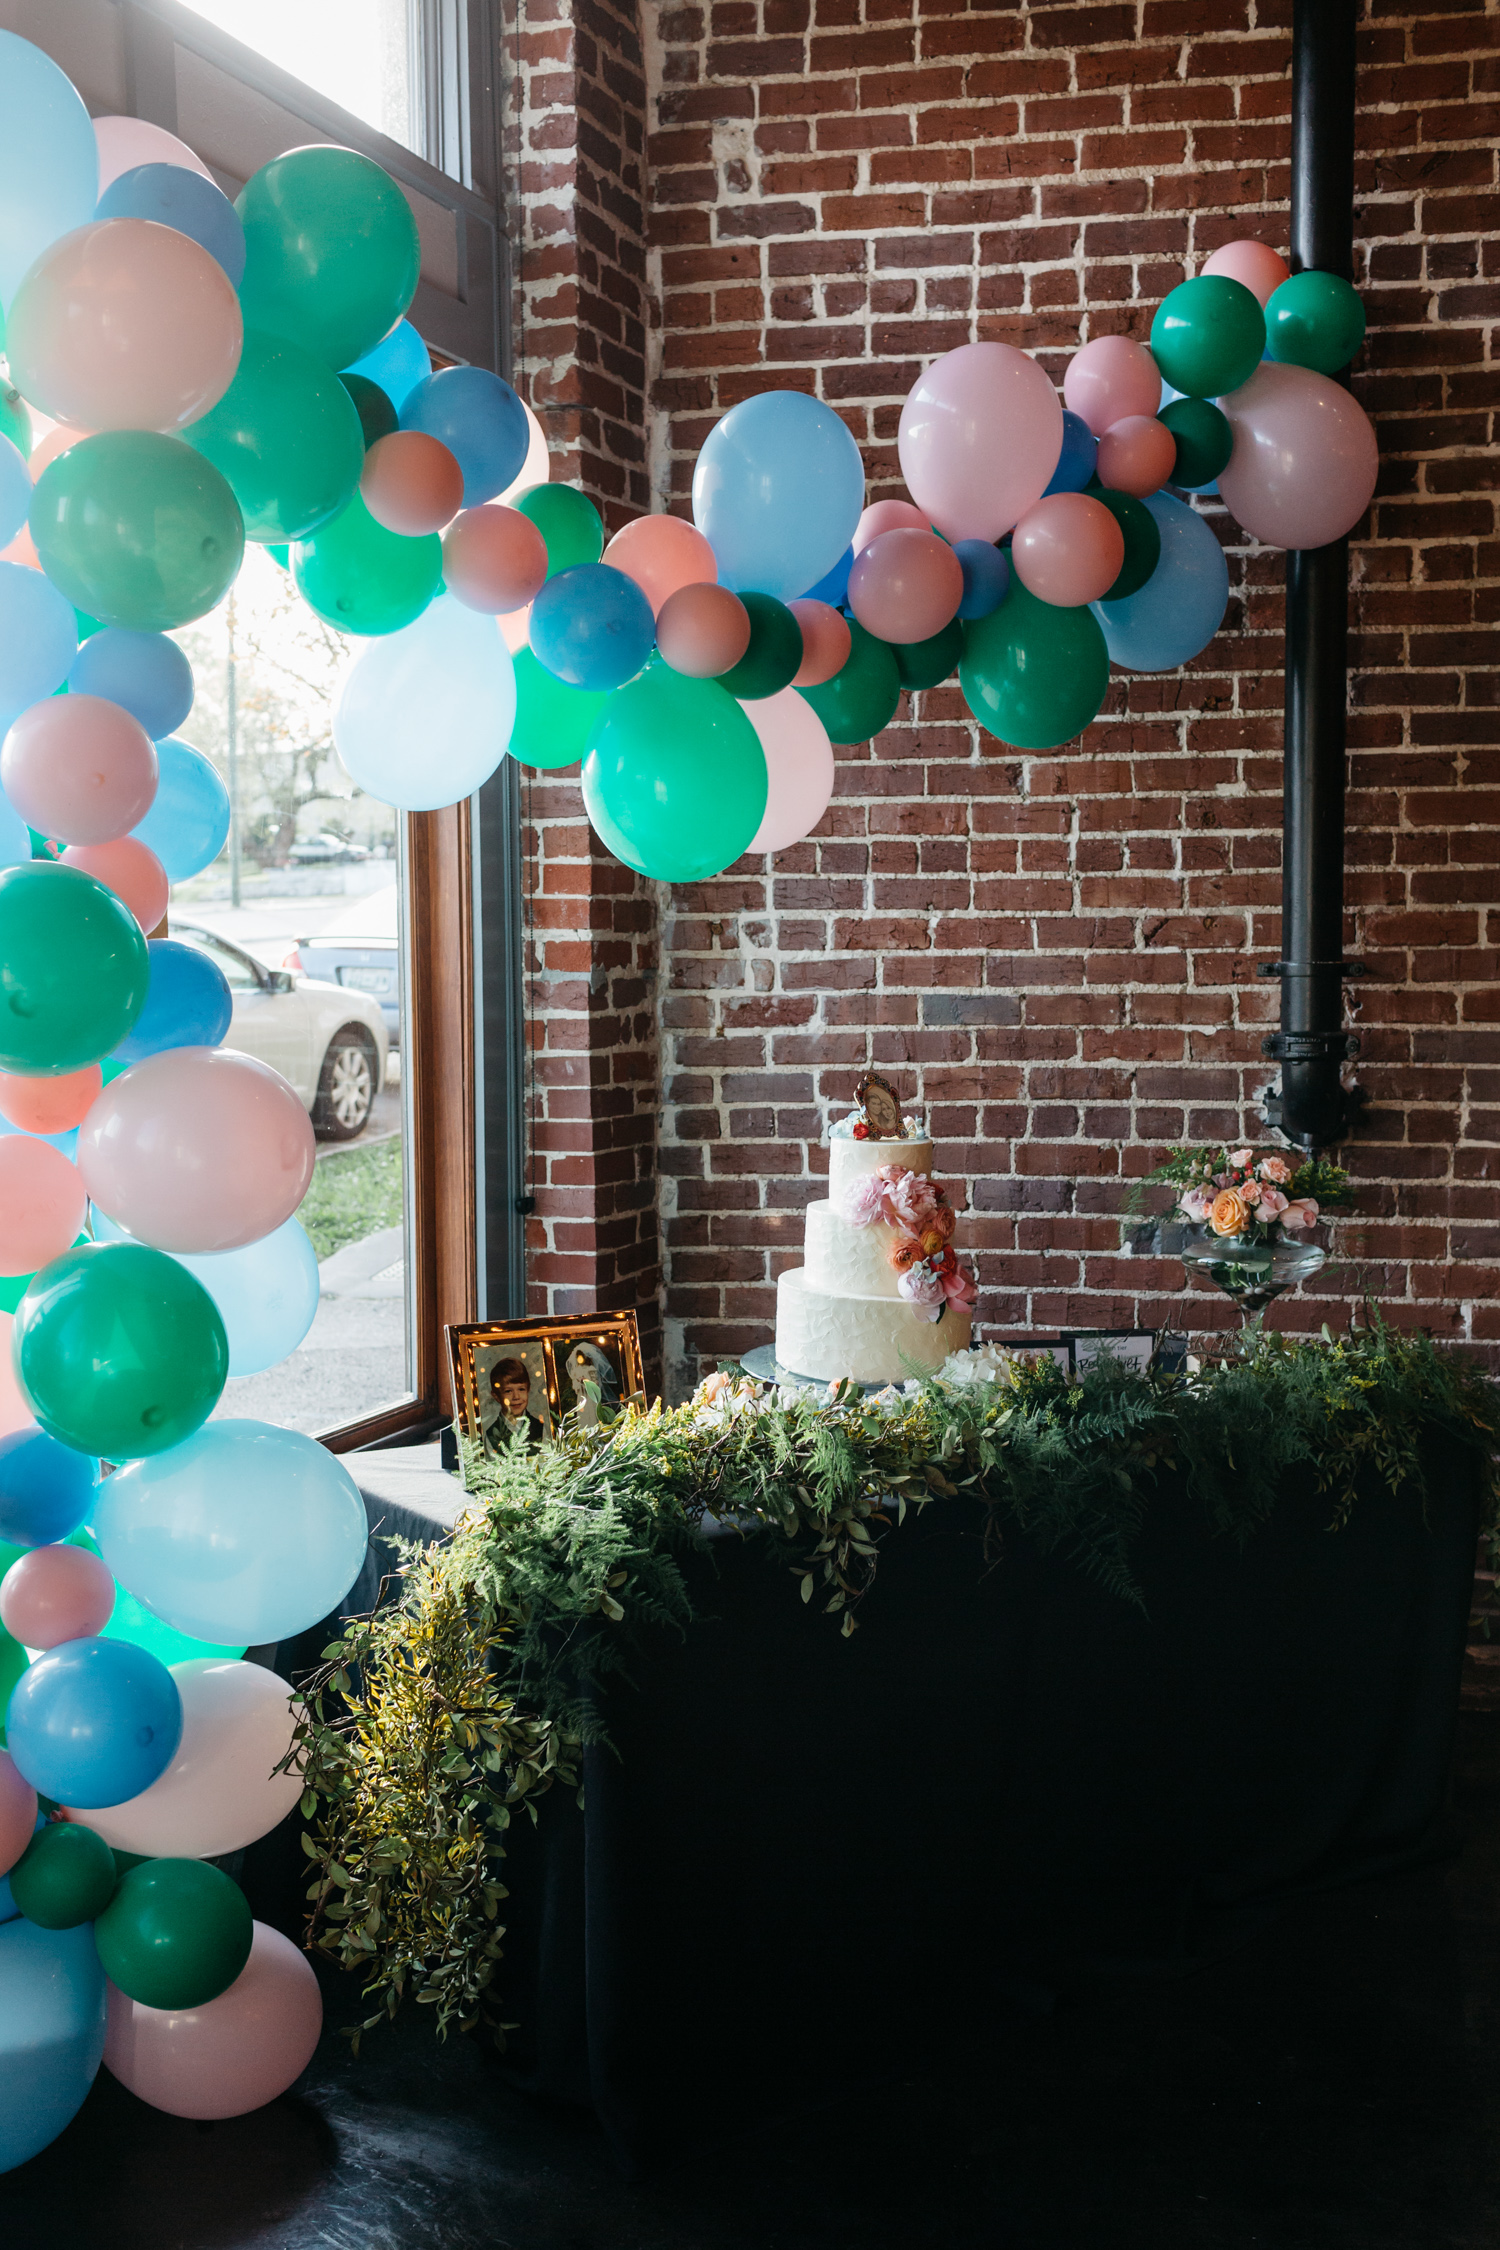 Standard Downtown Knoxville Wedding Venue Central Avenue Happy Holler Exposed Brick Wedding Cake Magpies Balloons